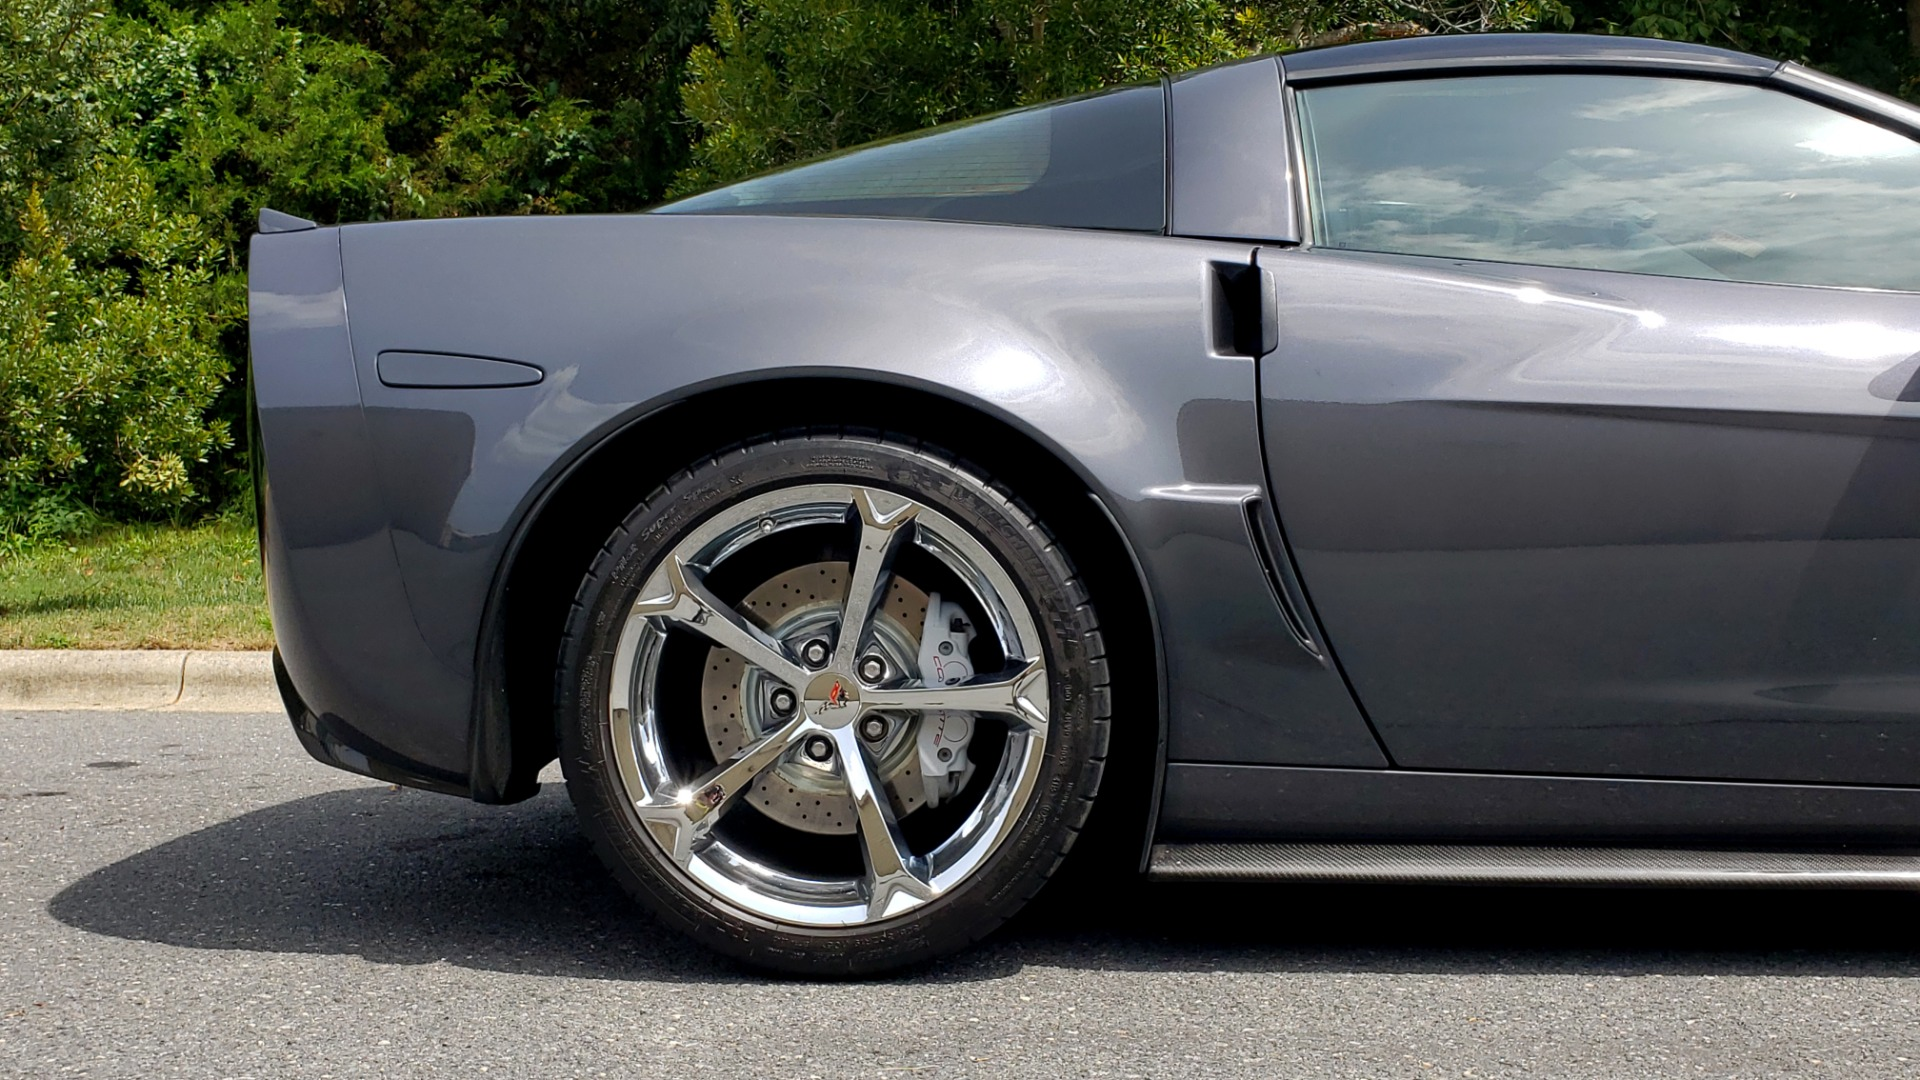 Used 2010 Chevrolet CORVETTE Z16 GRAND SPORT 3LT / HUD / 6.2L V8 / 6-SPD AUTO / NPP EXH for sale Sold at Formula Imports in Charlotte NC 28227 79